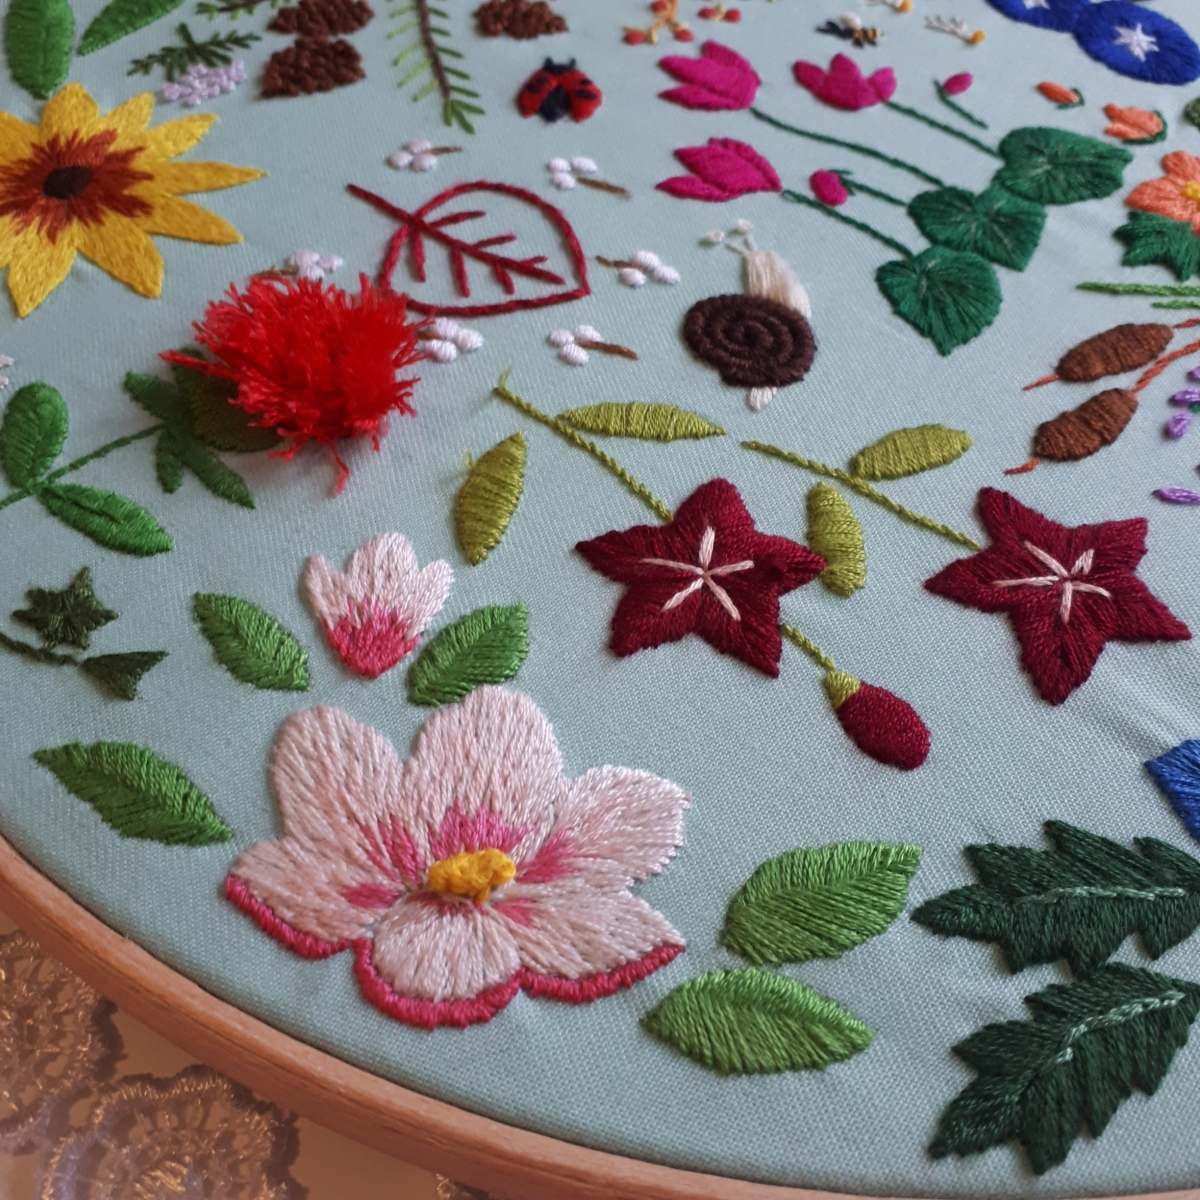 Book review- The hand stitched flower garden by YukiSugashima